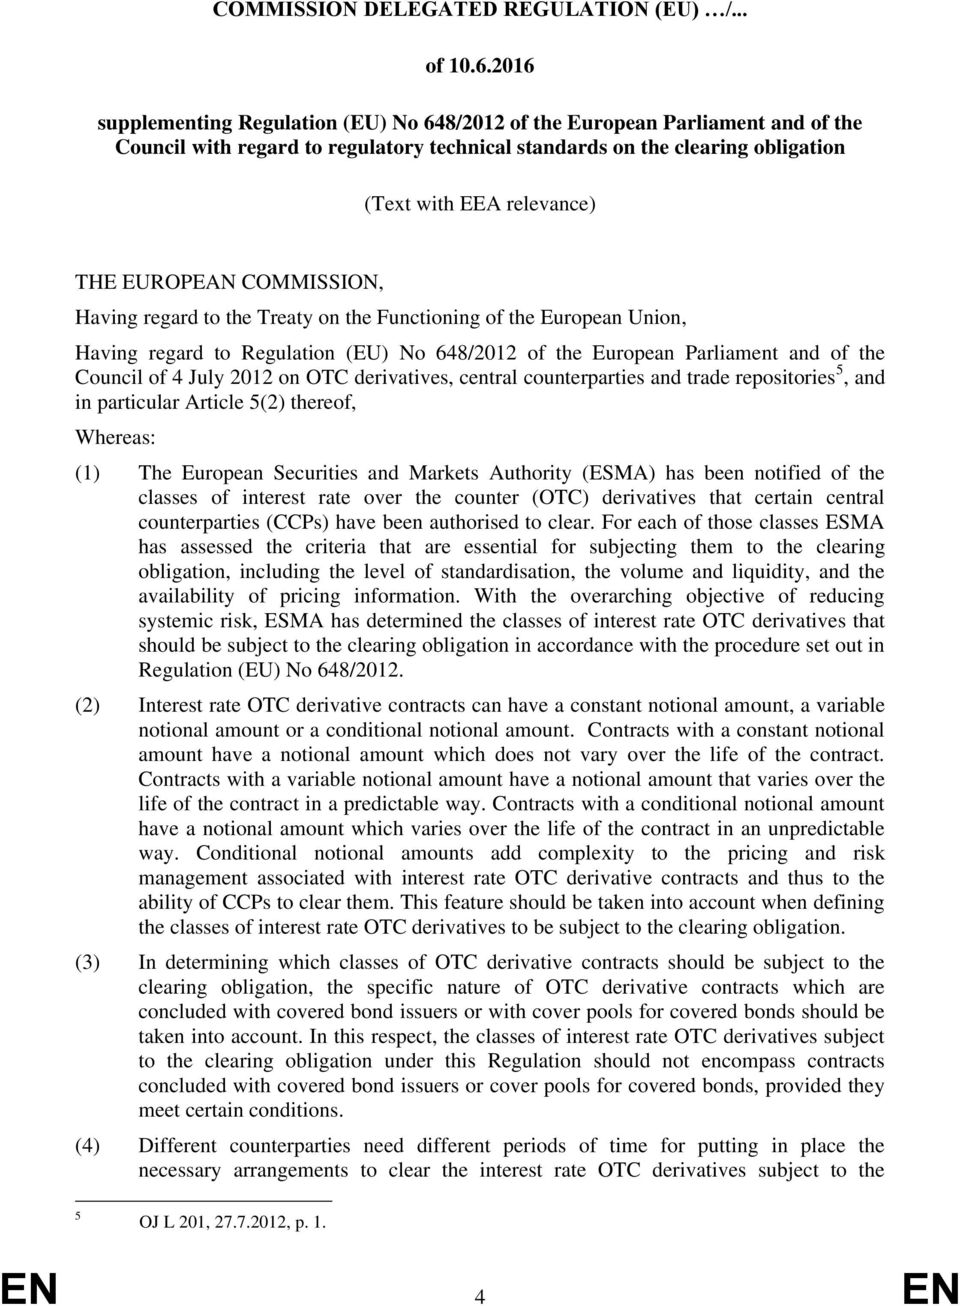 EUROPEAN COMMISSION, Having regard to the Treaty on the Functioning of the European Union, Having regard to Regulation (EU) No 648/2012 of the European Parliament and of the Council of 4 July 2012 on